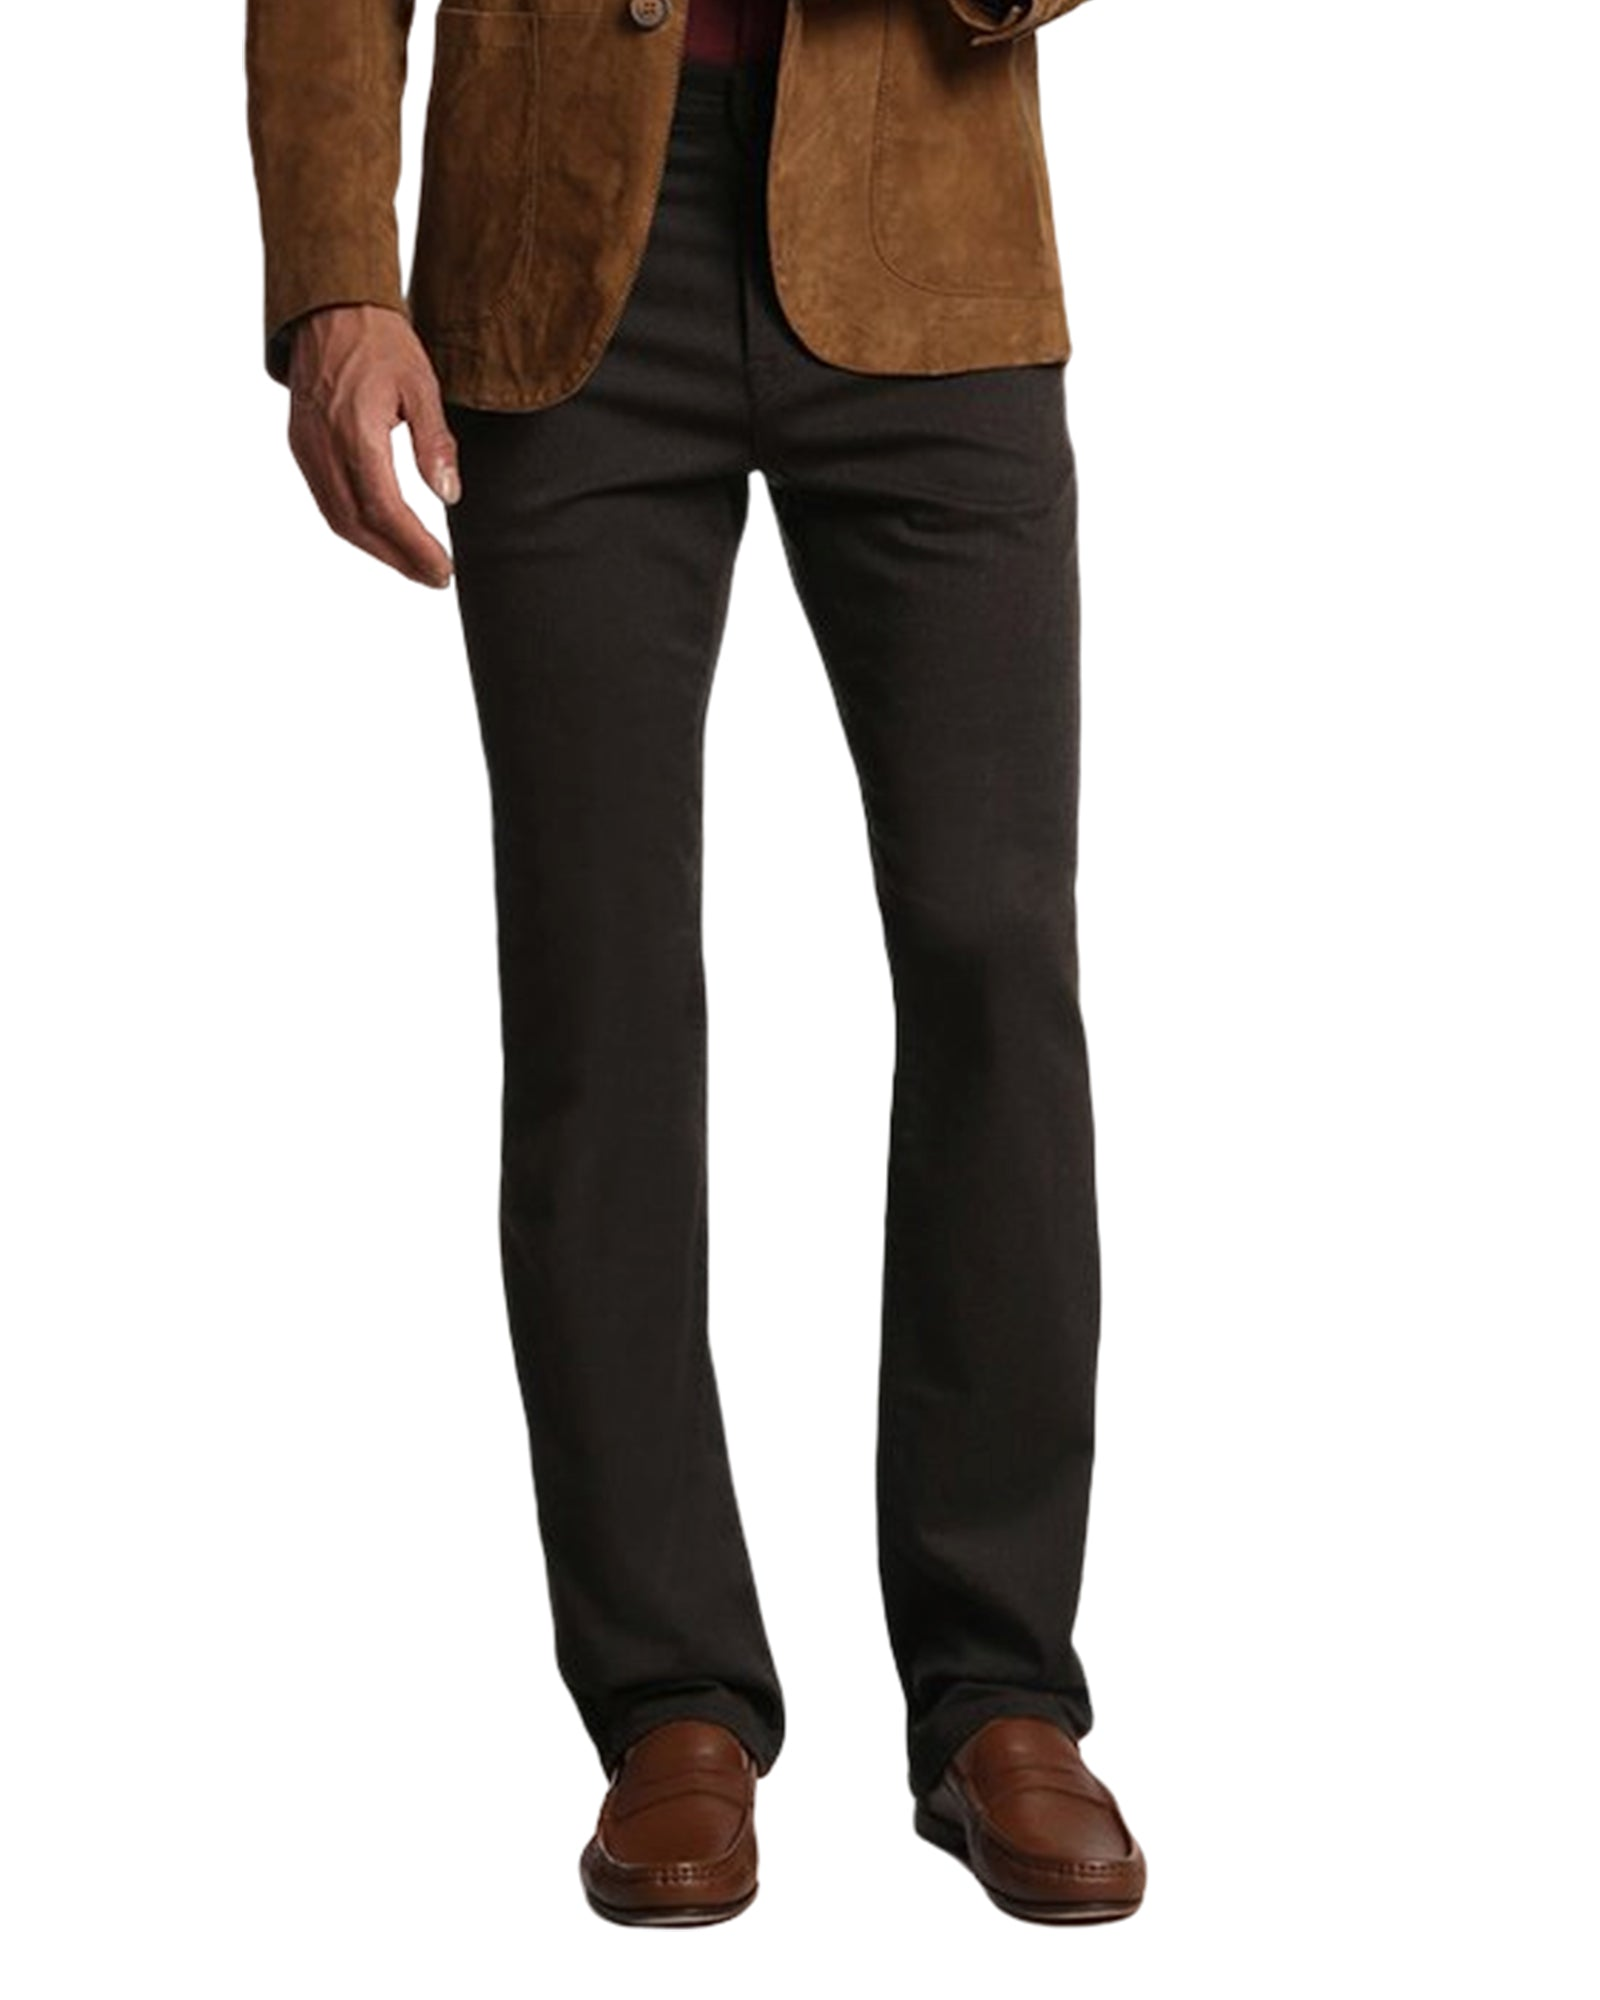 34 Heritage Charisma Fit Mocca Luxe Jeans - Rainwater's